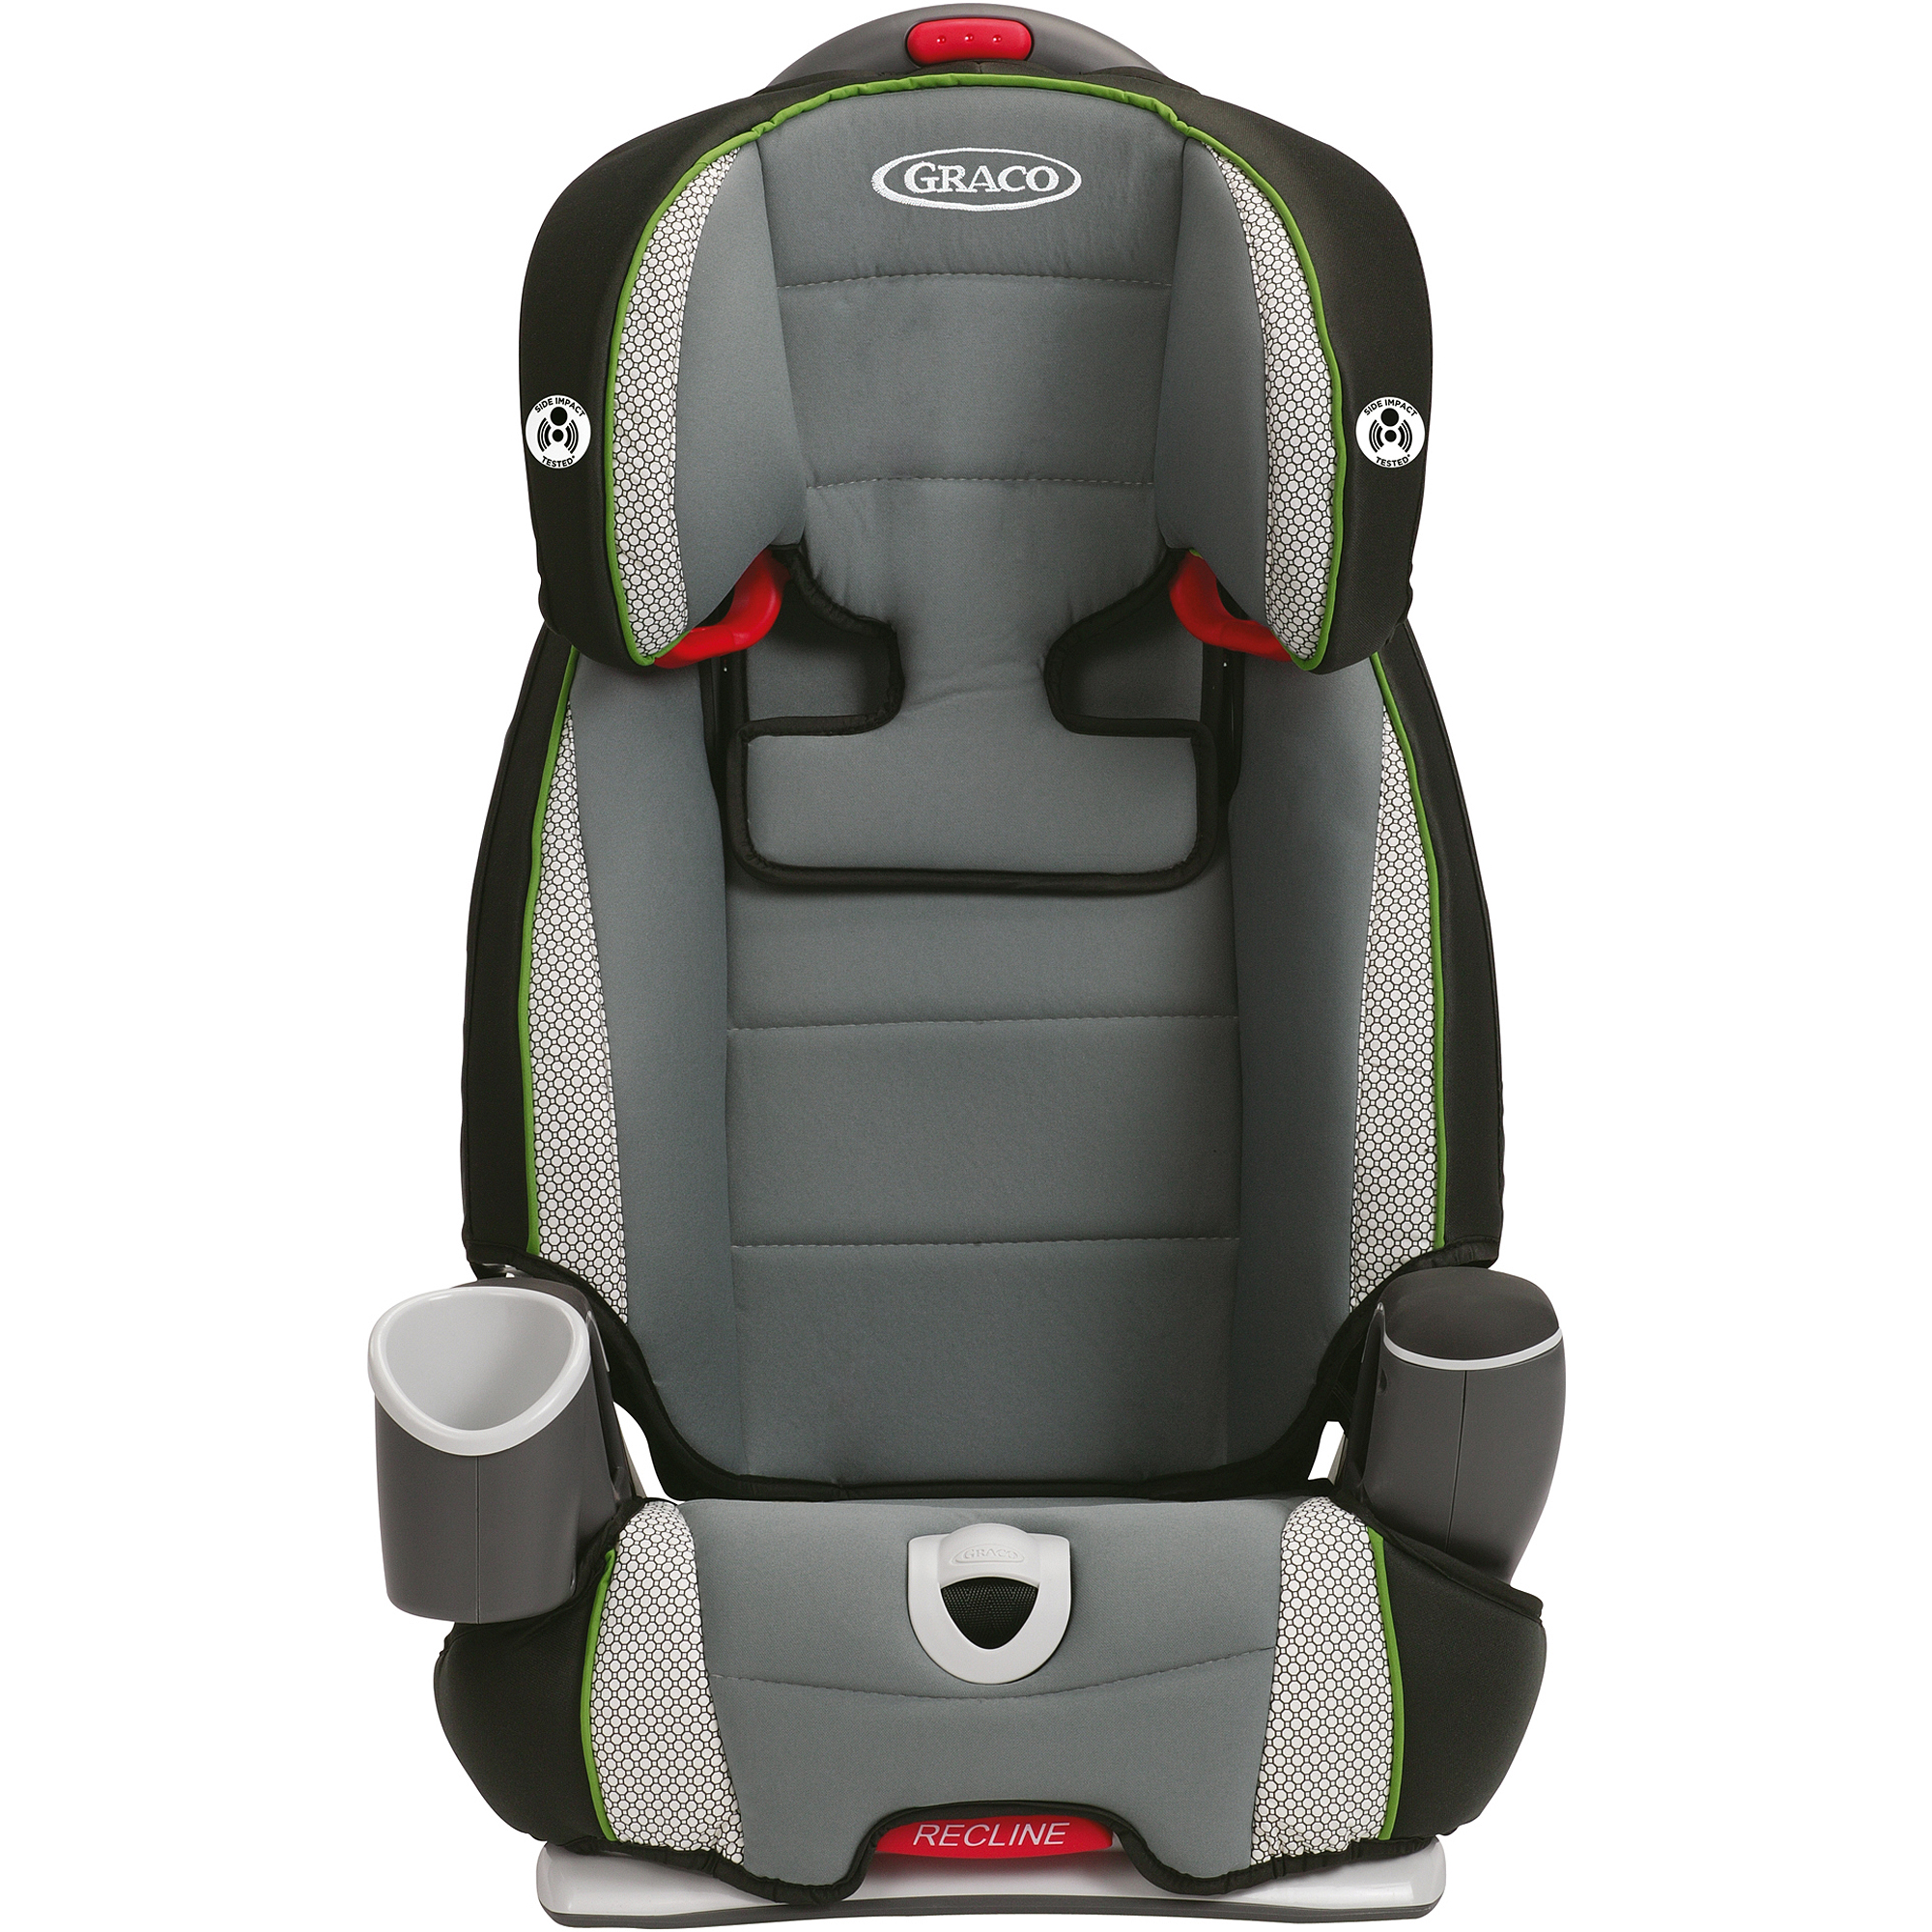 chair gym argos extravaganza wedding covers graco 65 3 in 1 booster car seat webster walmart com departments